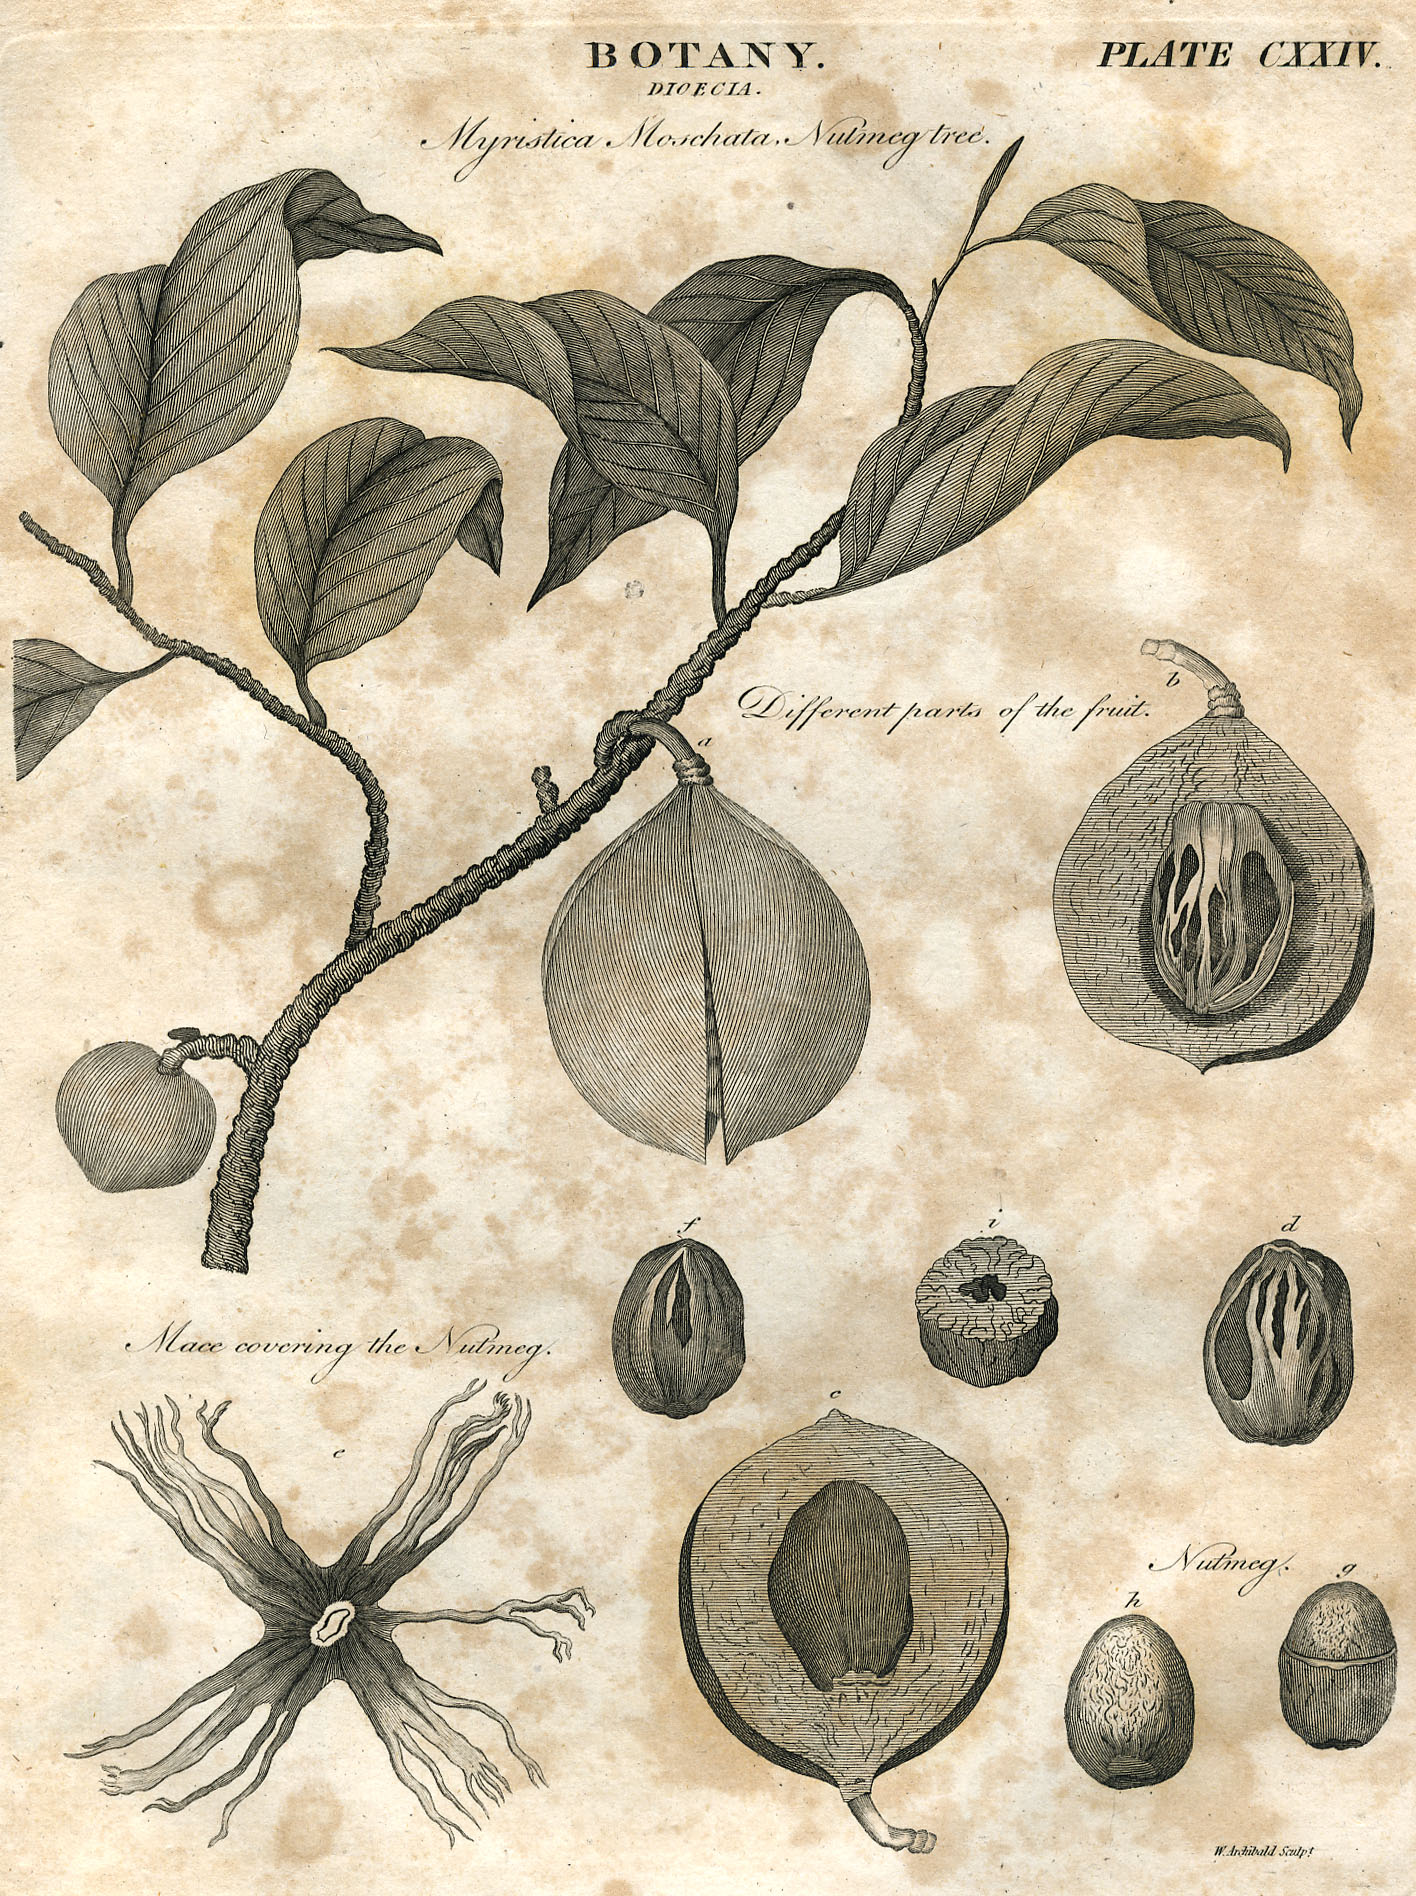 File:Botany plate 124 britannica 5th edition 1817 engraved by William Miller for William ...